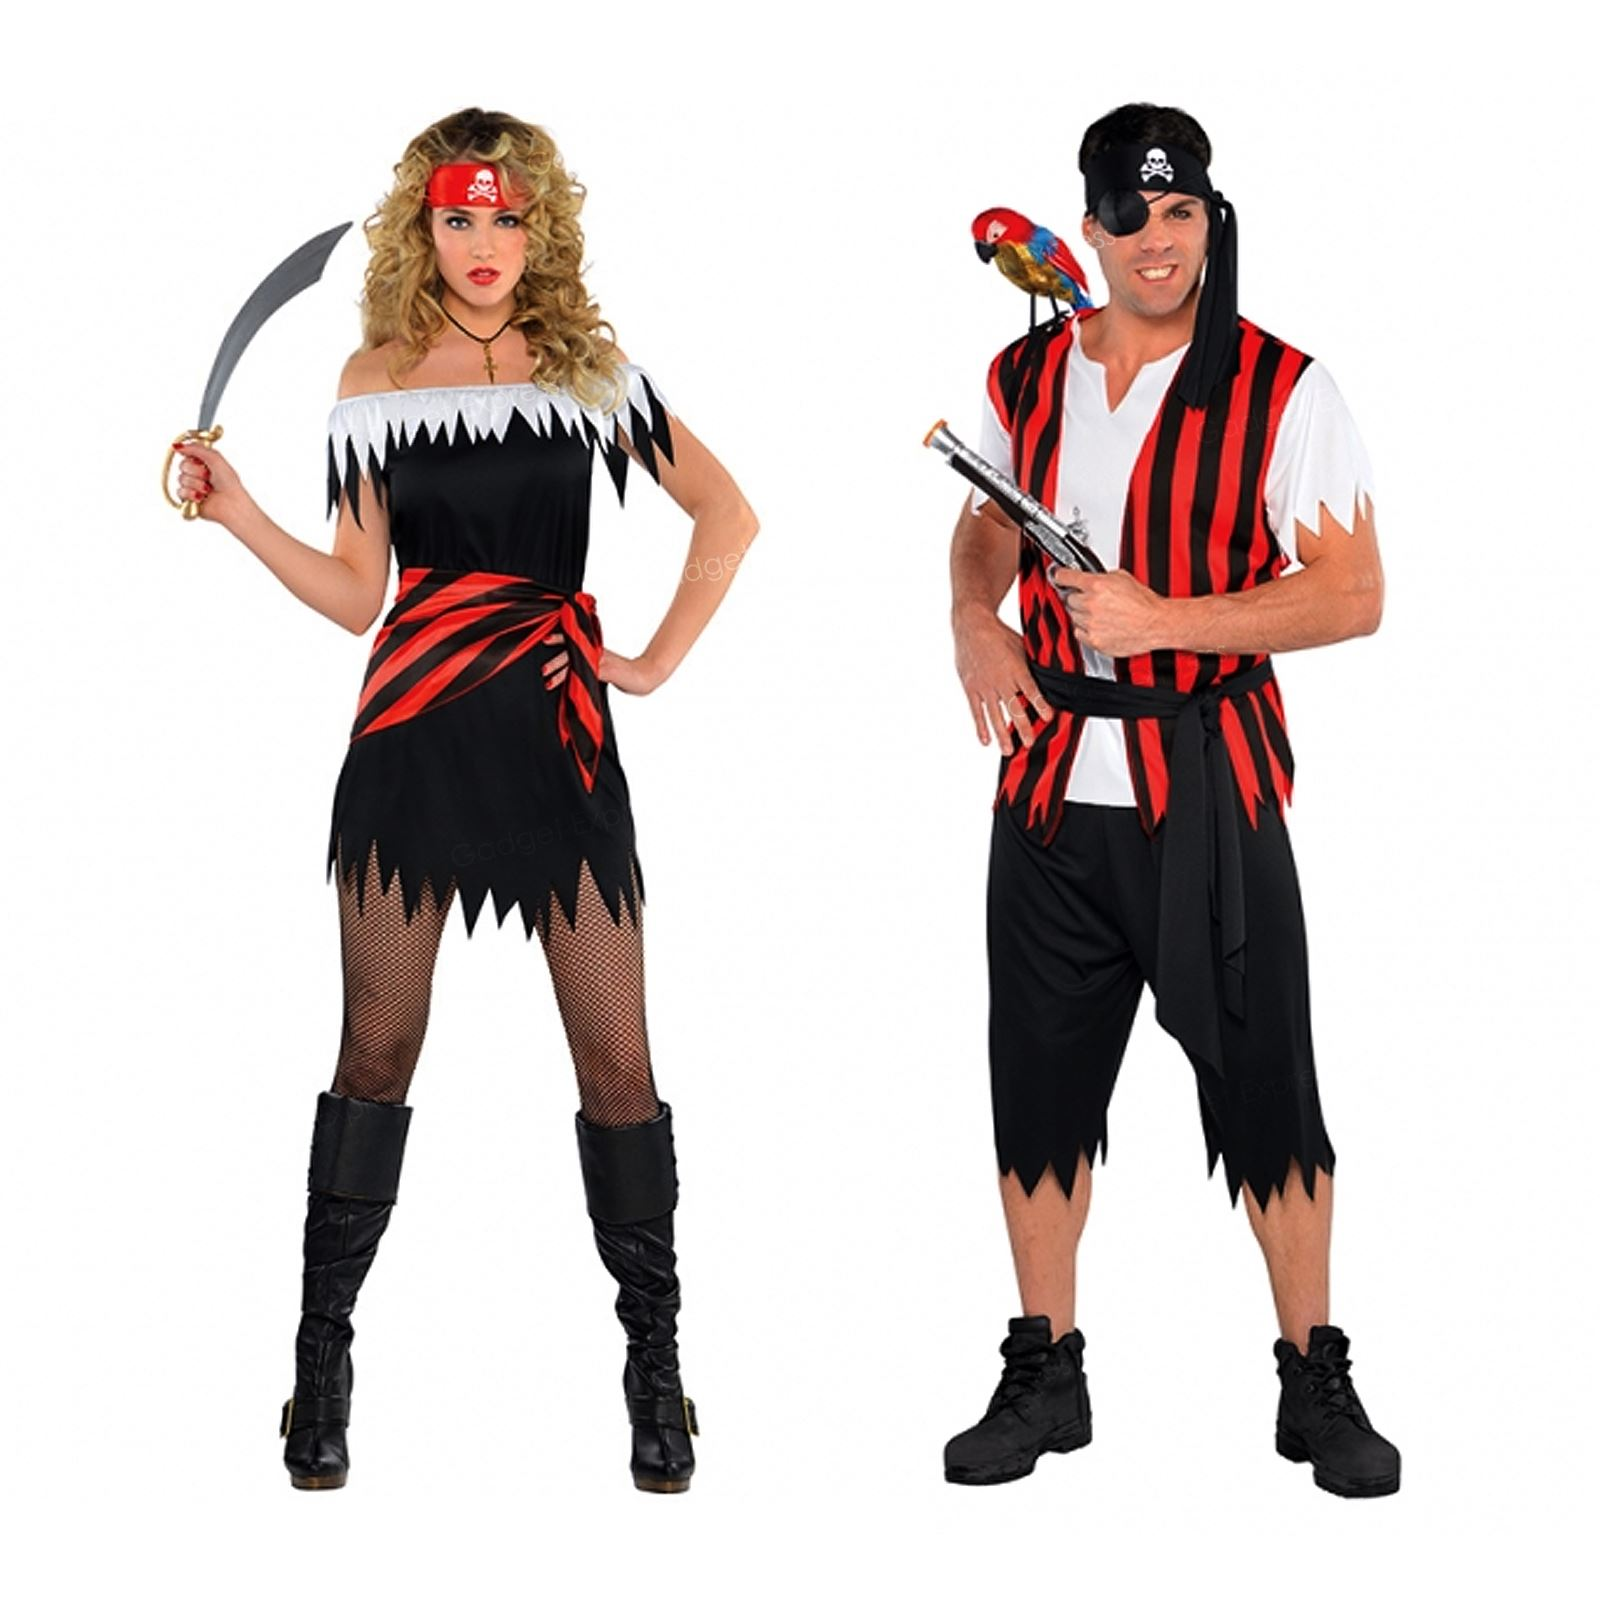 4ece9b0f0ba Details about Mens Womens Caribbean Pirate Captain Halloween Fancy Dress  Party Couples Outfit